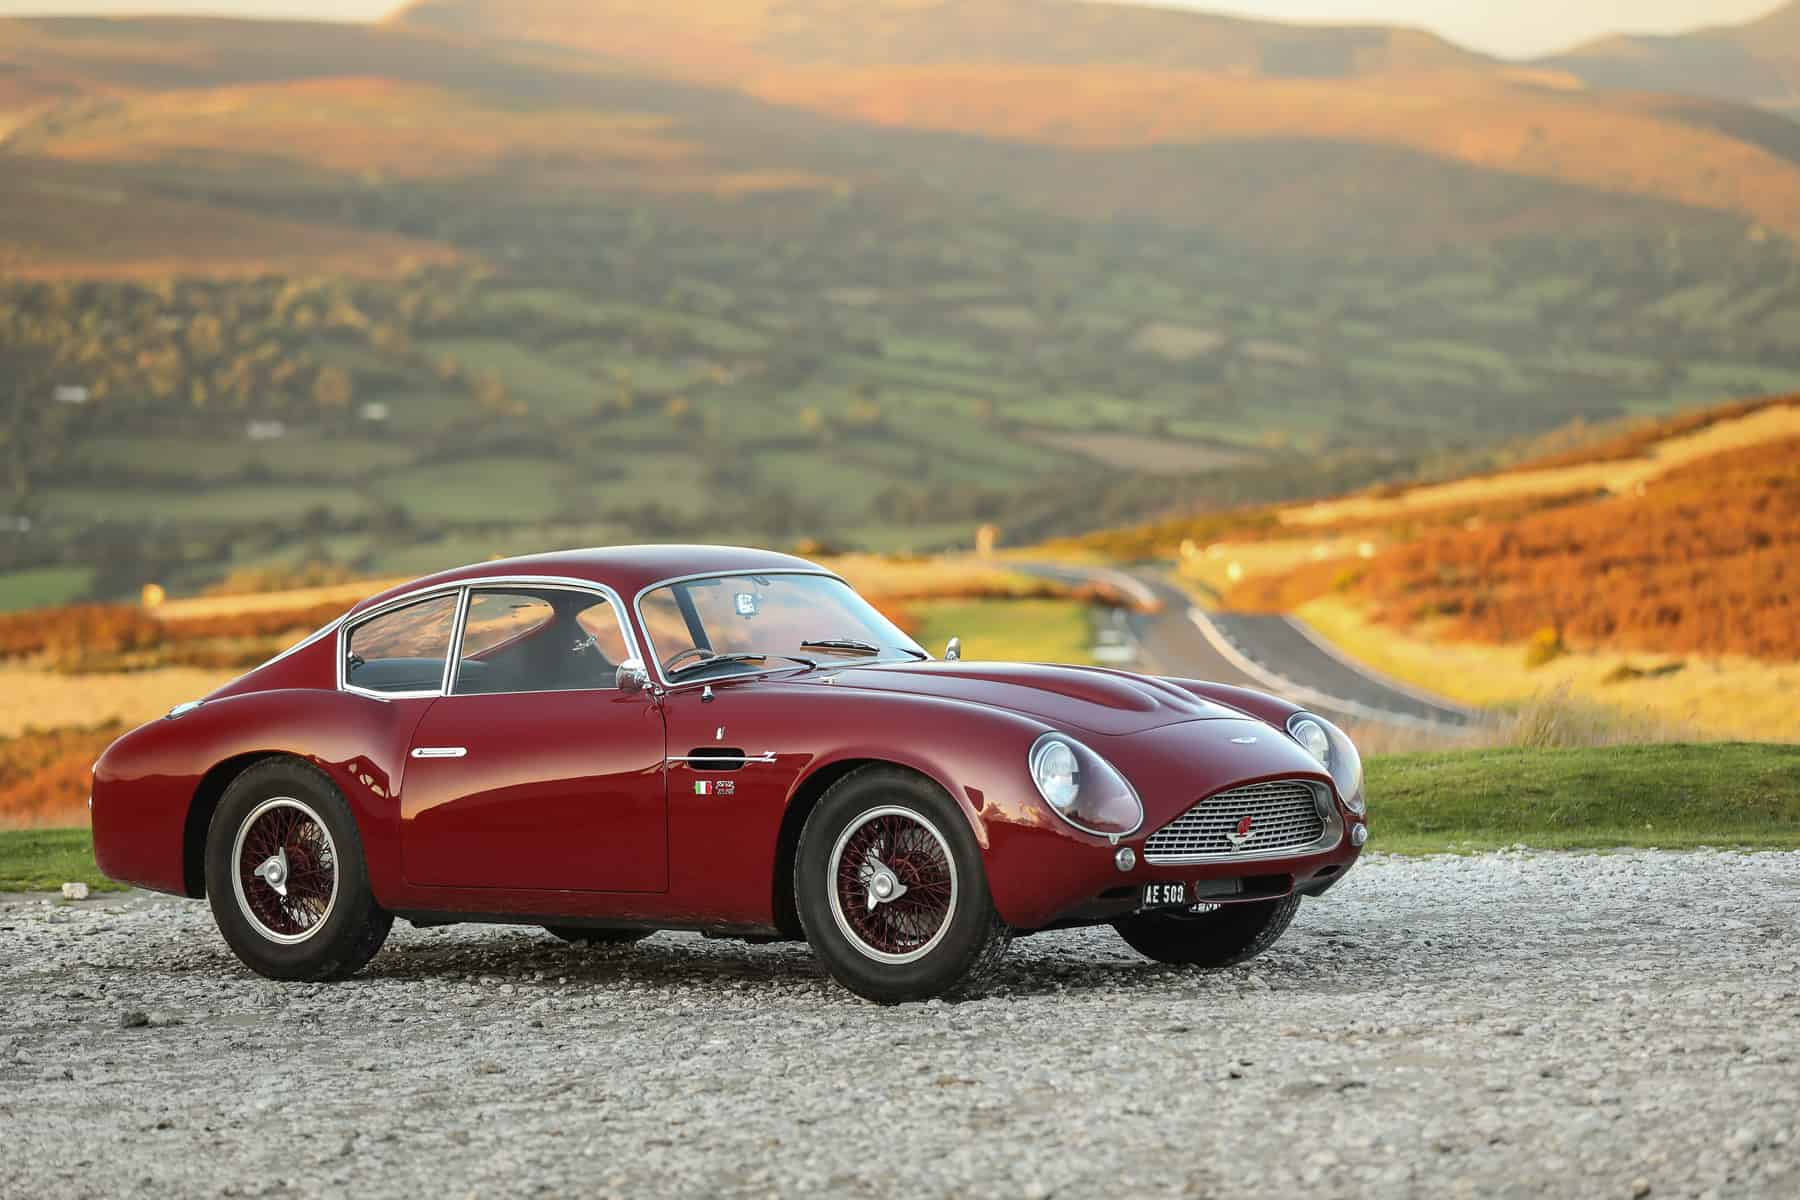 gooding & company passion of a lifetime auction 1961 Aston Martin DB4 GT Zagato